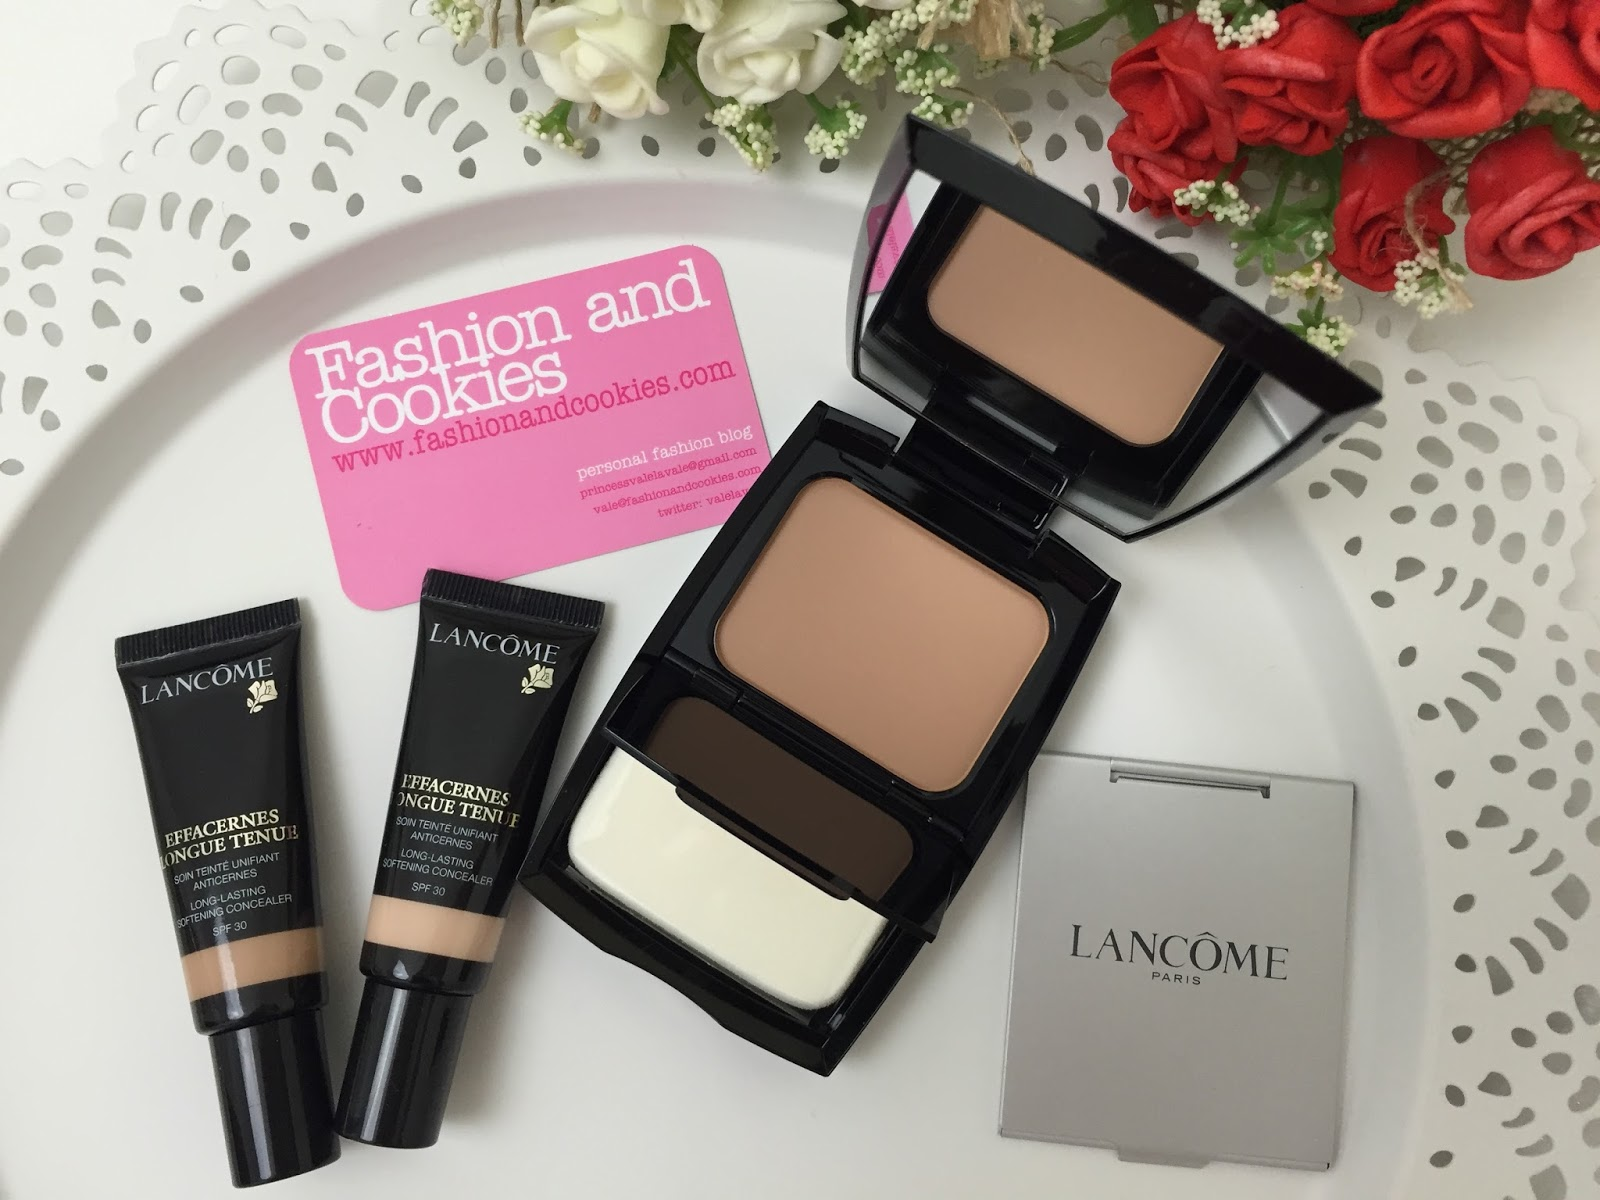 Lancôme Effacernes Longue Tenue concealer and the brand new Teint Idole Ultra Compact foundation review on Fashion and Cookies beauty blog, beauty blogger